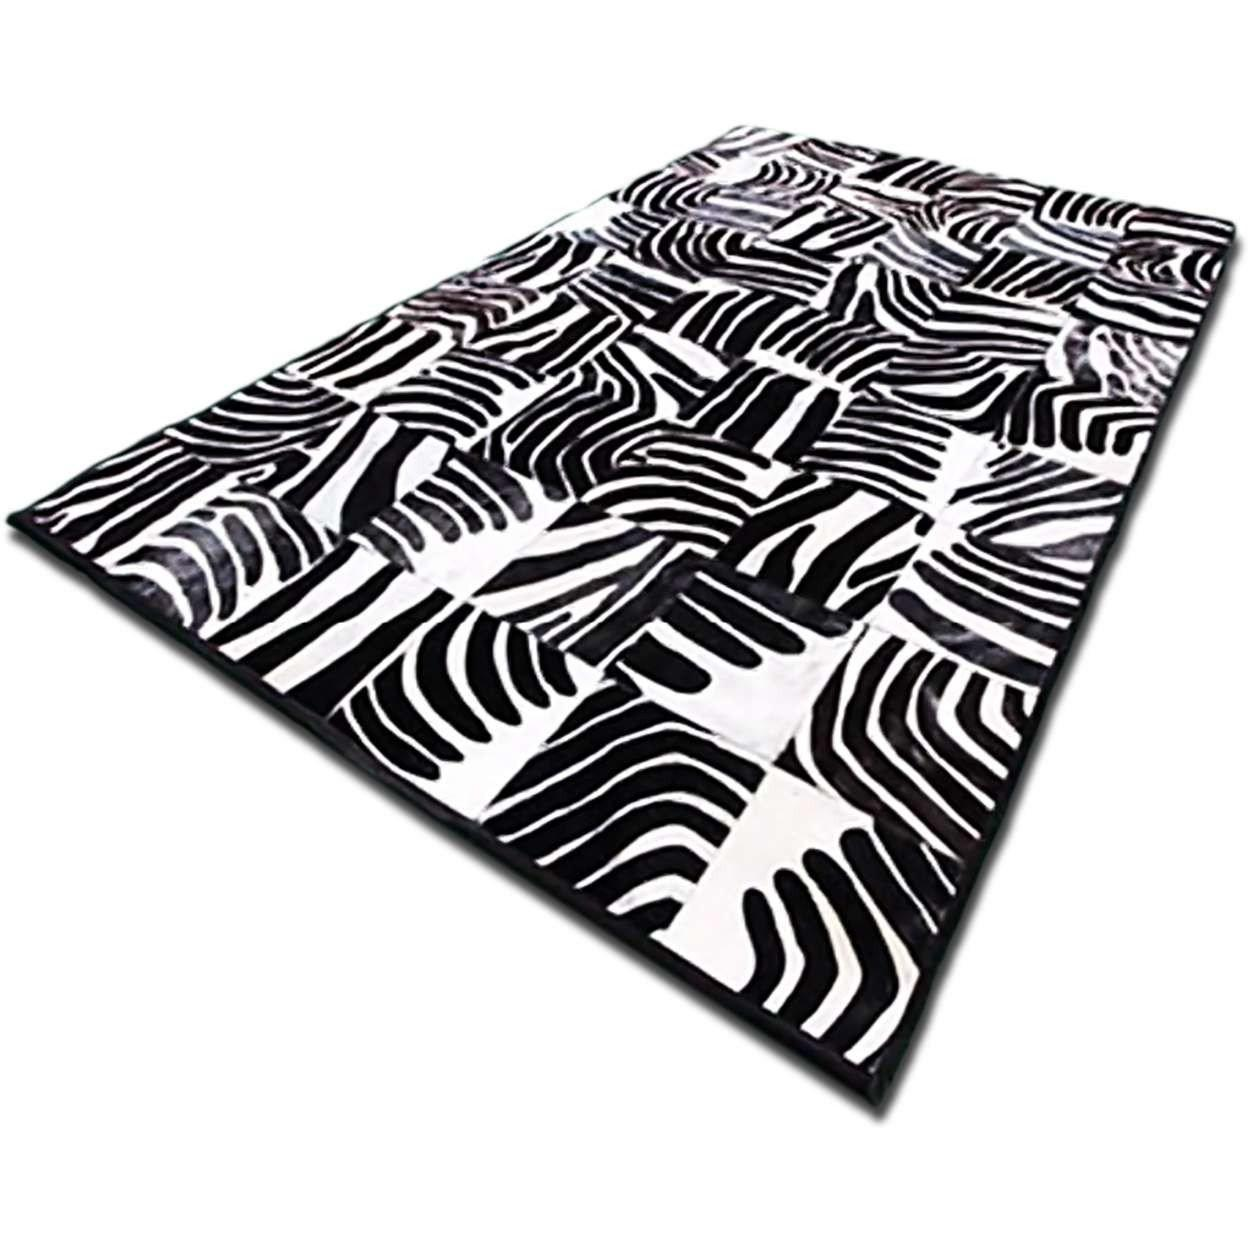 Custom Patchwork Cowhide Area Rug Black White Zebra